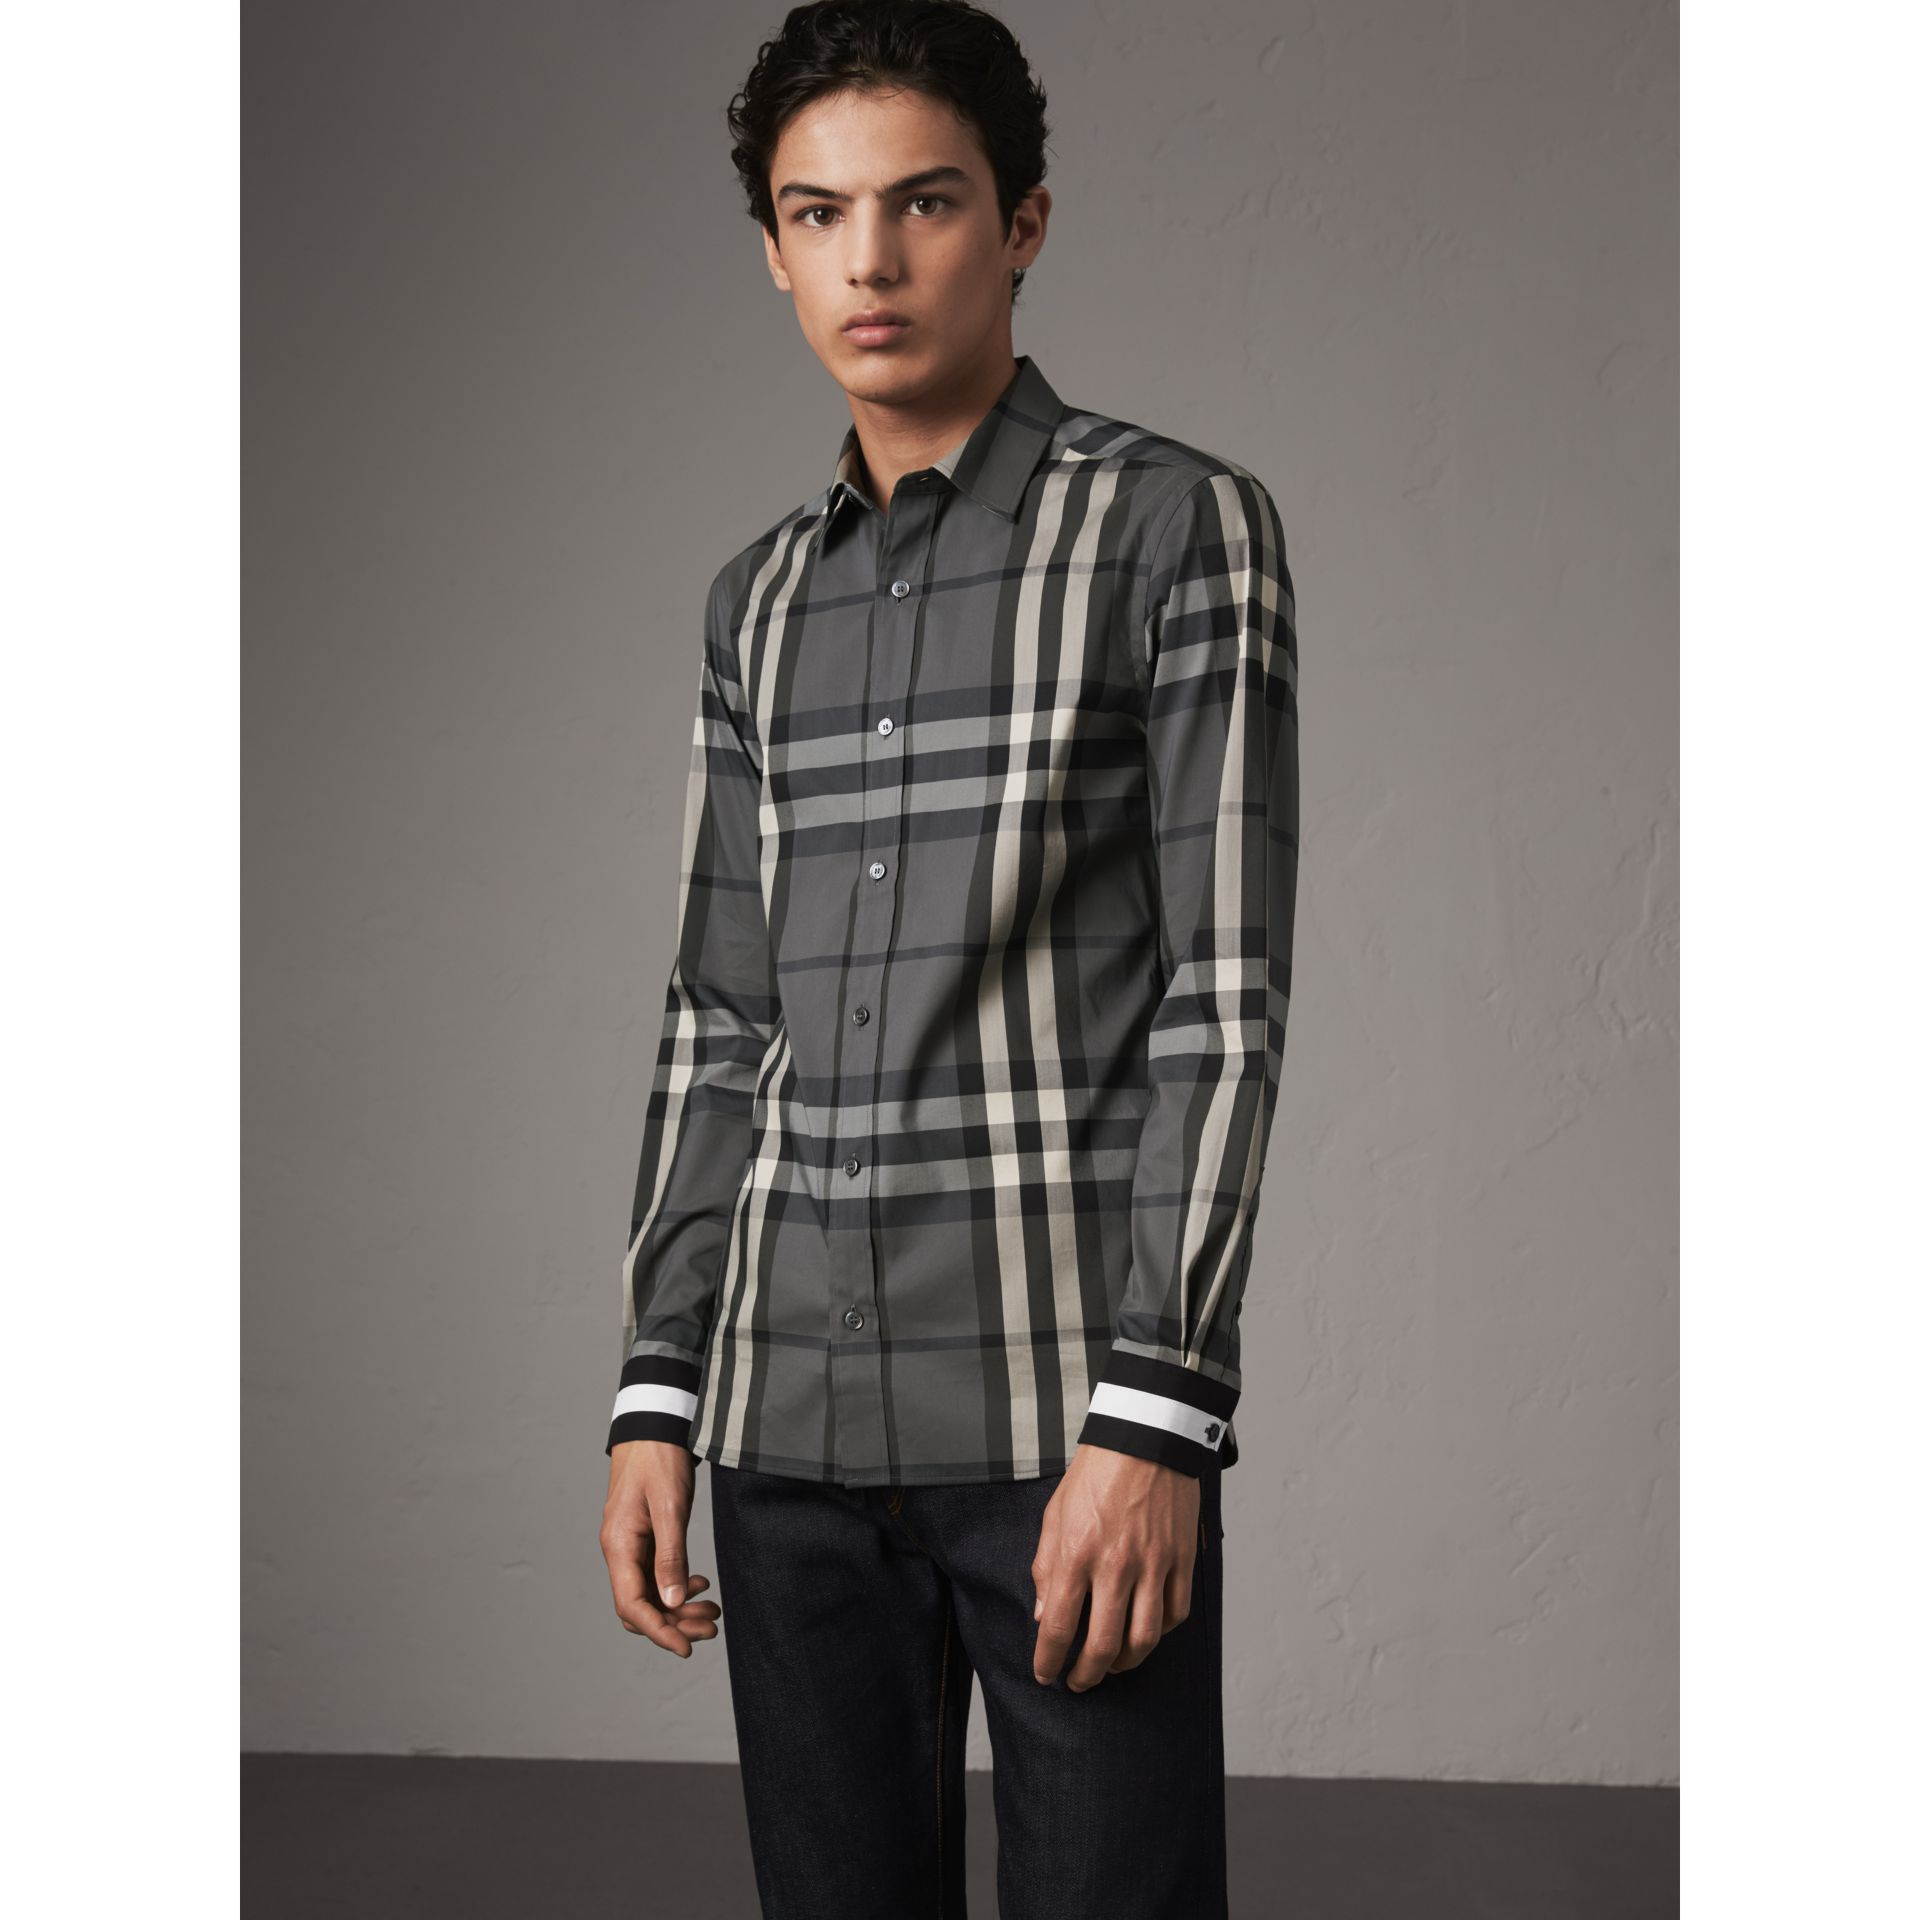 Striped Cuff Check Cotton Blend Shirt in Charcoal - Men | Burberry Hong Kong - gallery image 1